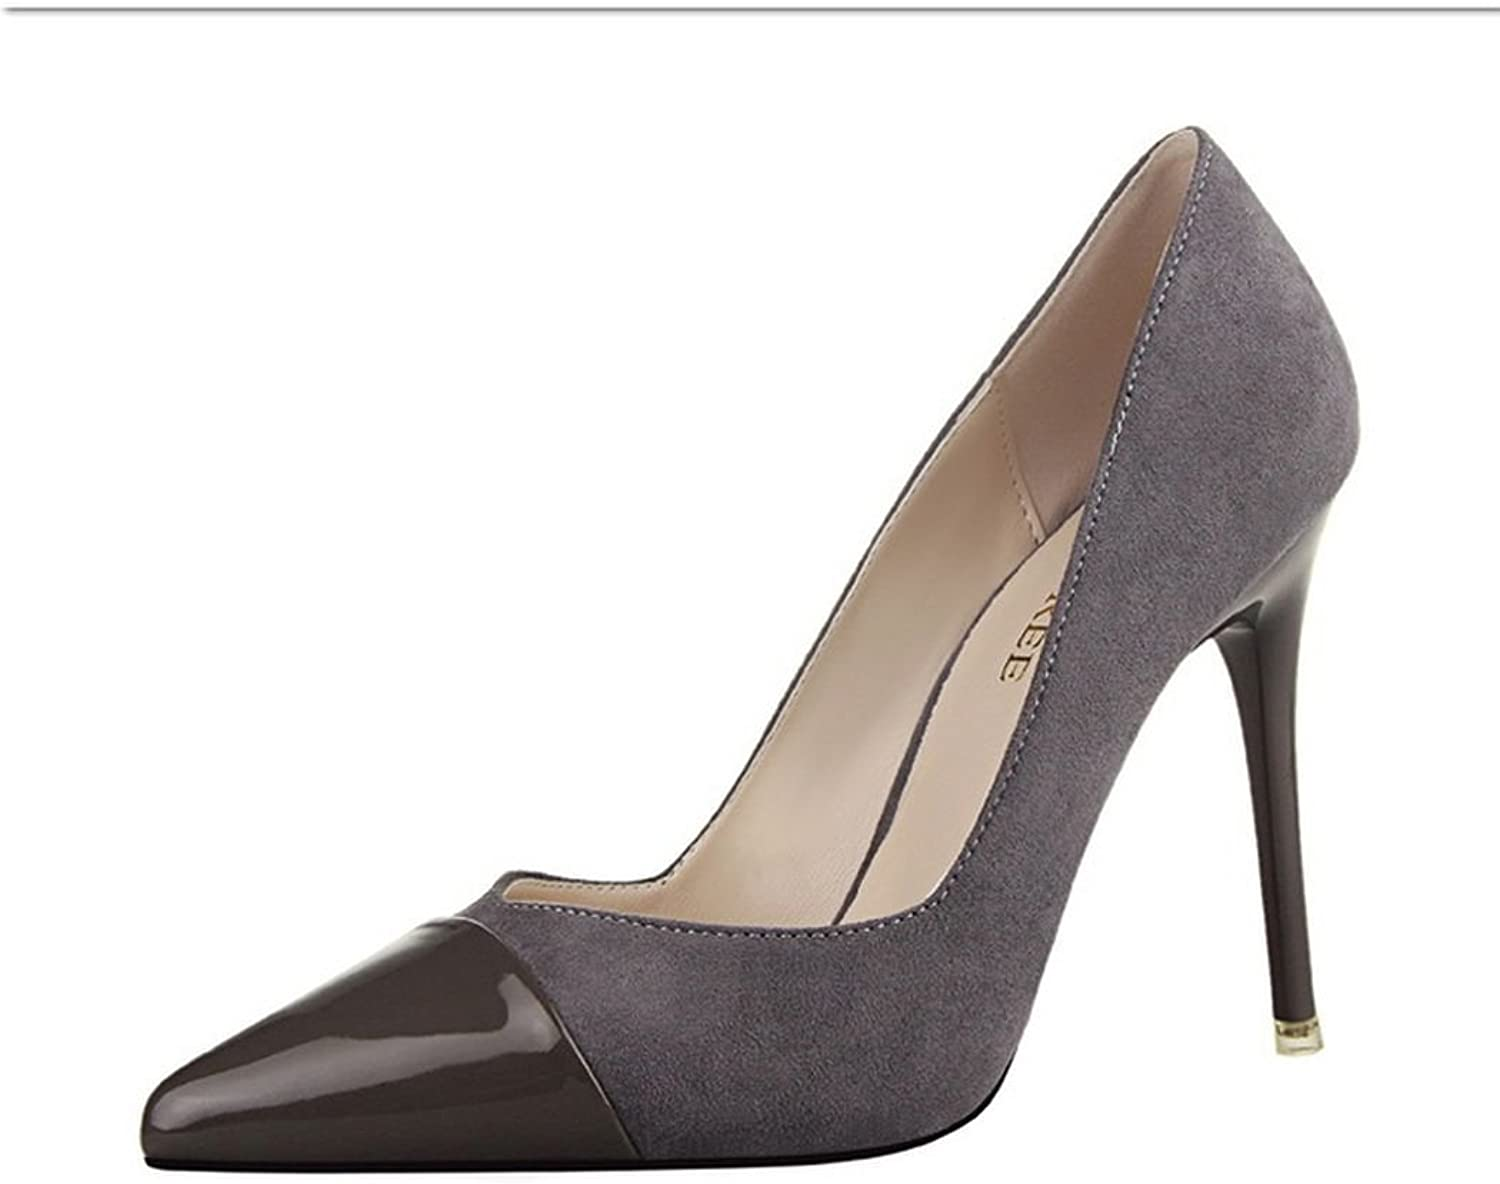 R.Y.S.E Ryse Women's Fashionable Mixed Suede Leather Elegant Temperament High Heels Pointy shoes(39 M EU 8.5 B(M) US, Grey)